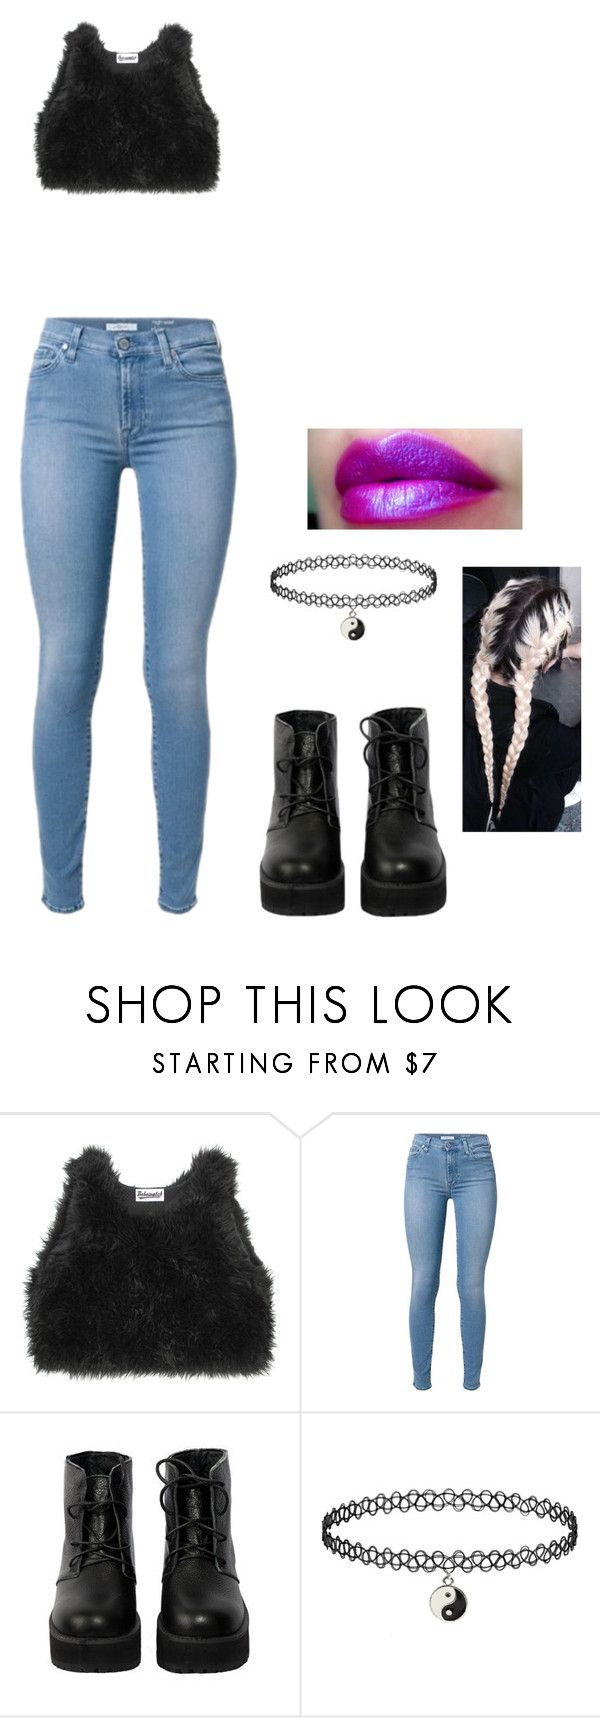 """""""90's style. #2"""" by xoaac ❤ liked on Polyvore featuring The WhitePepper, women's clothing, women, female, woman, misses, juniors, ootd, 90s and followme"""